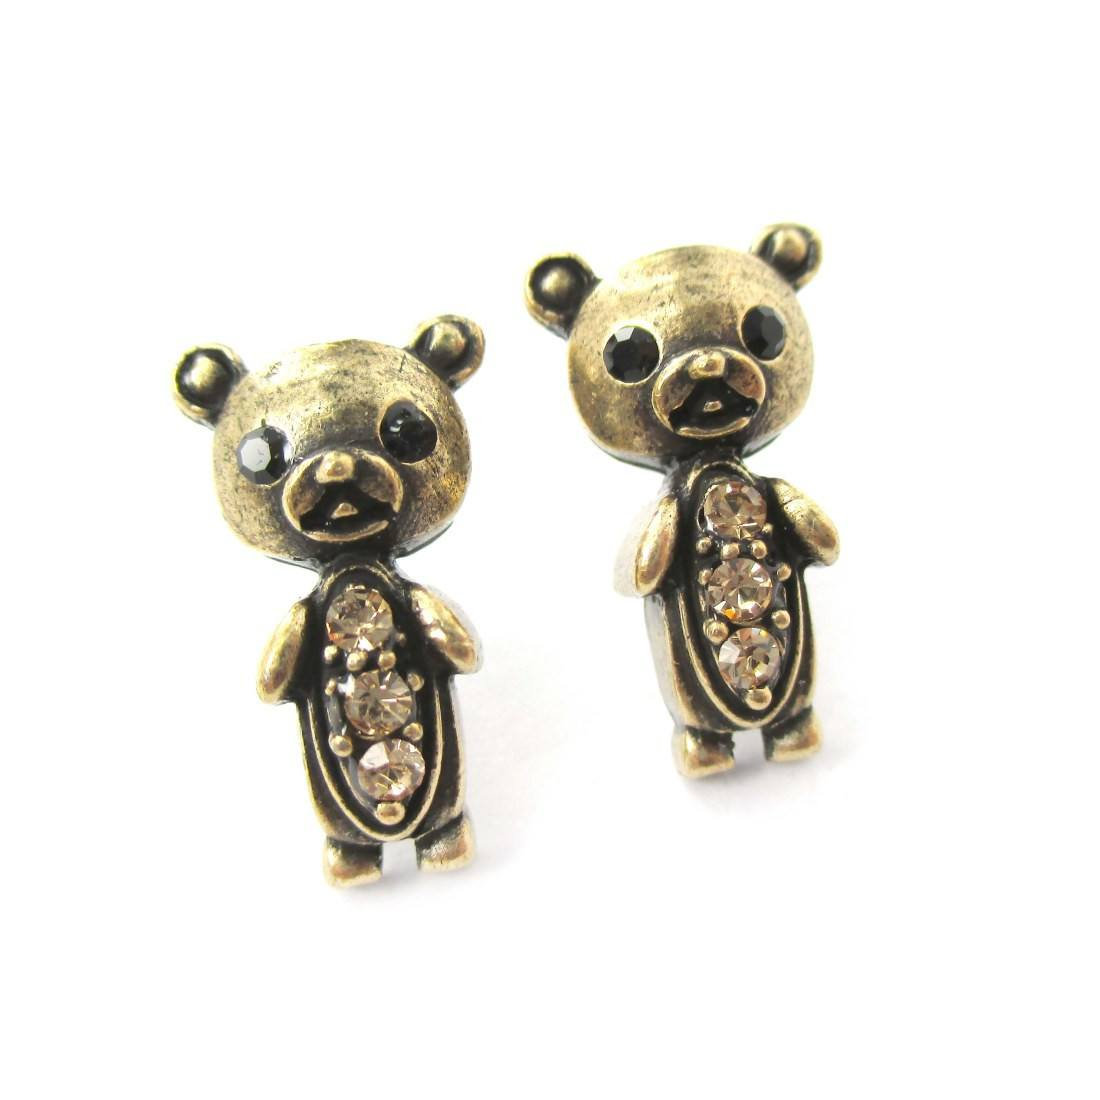 Adorable Teddy Bear Shaped Stud Earrings in Brass with Rhinestones